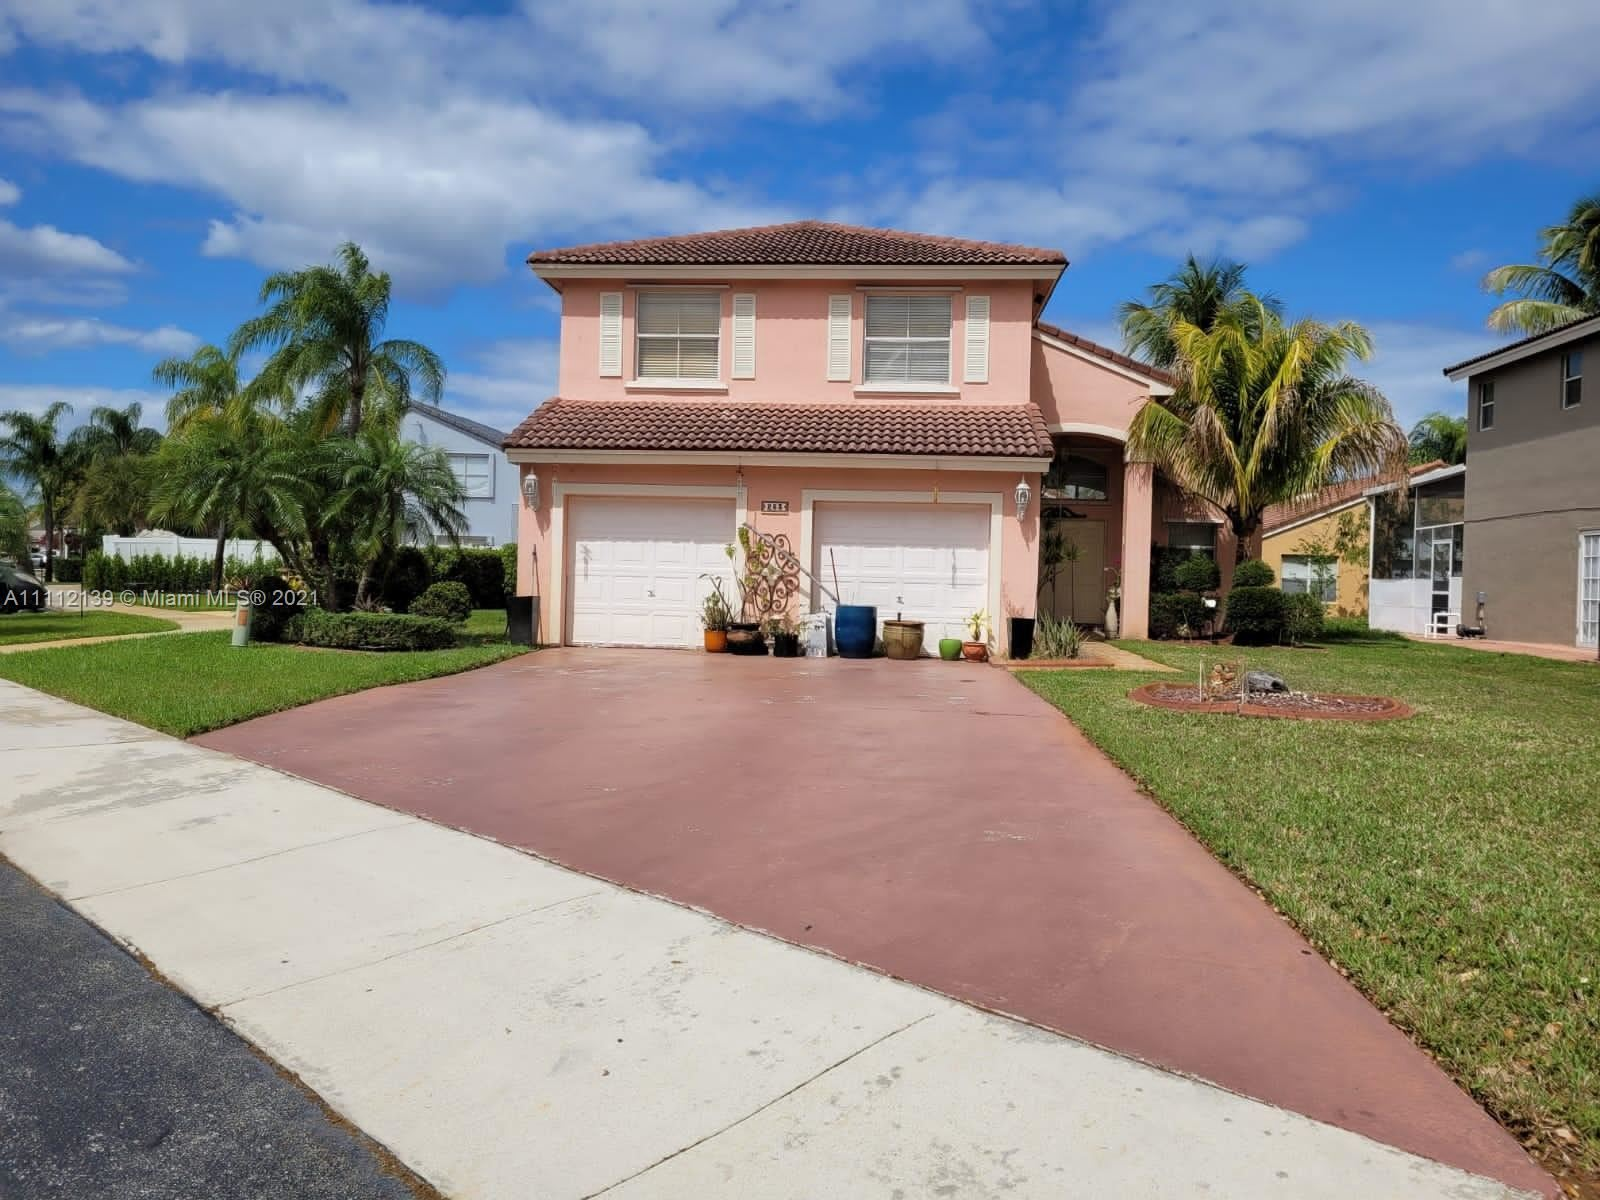 Photo of 253 NW 166th Ave, Pembroke Pines, FL 33028 (MLS # A11112139)